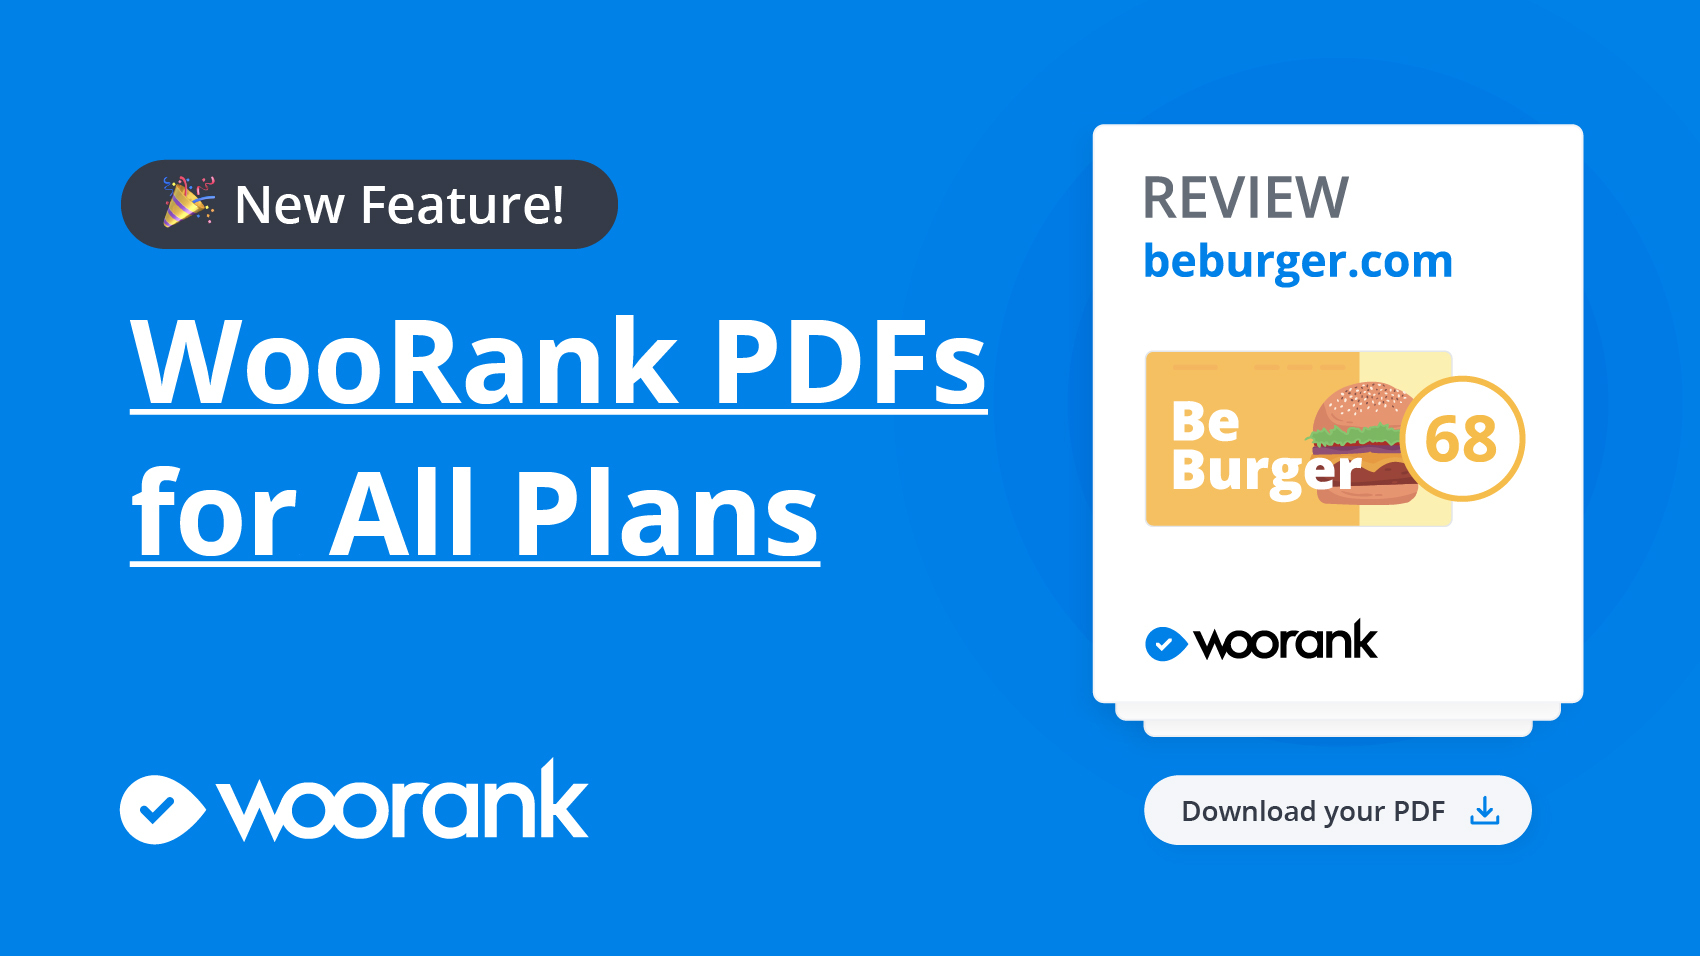 WooRank PDF Templates available to all users